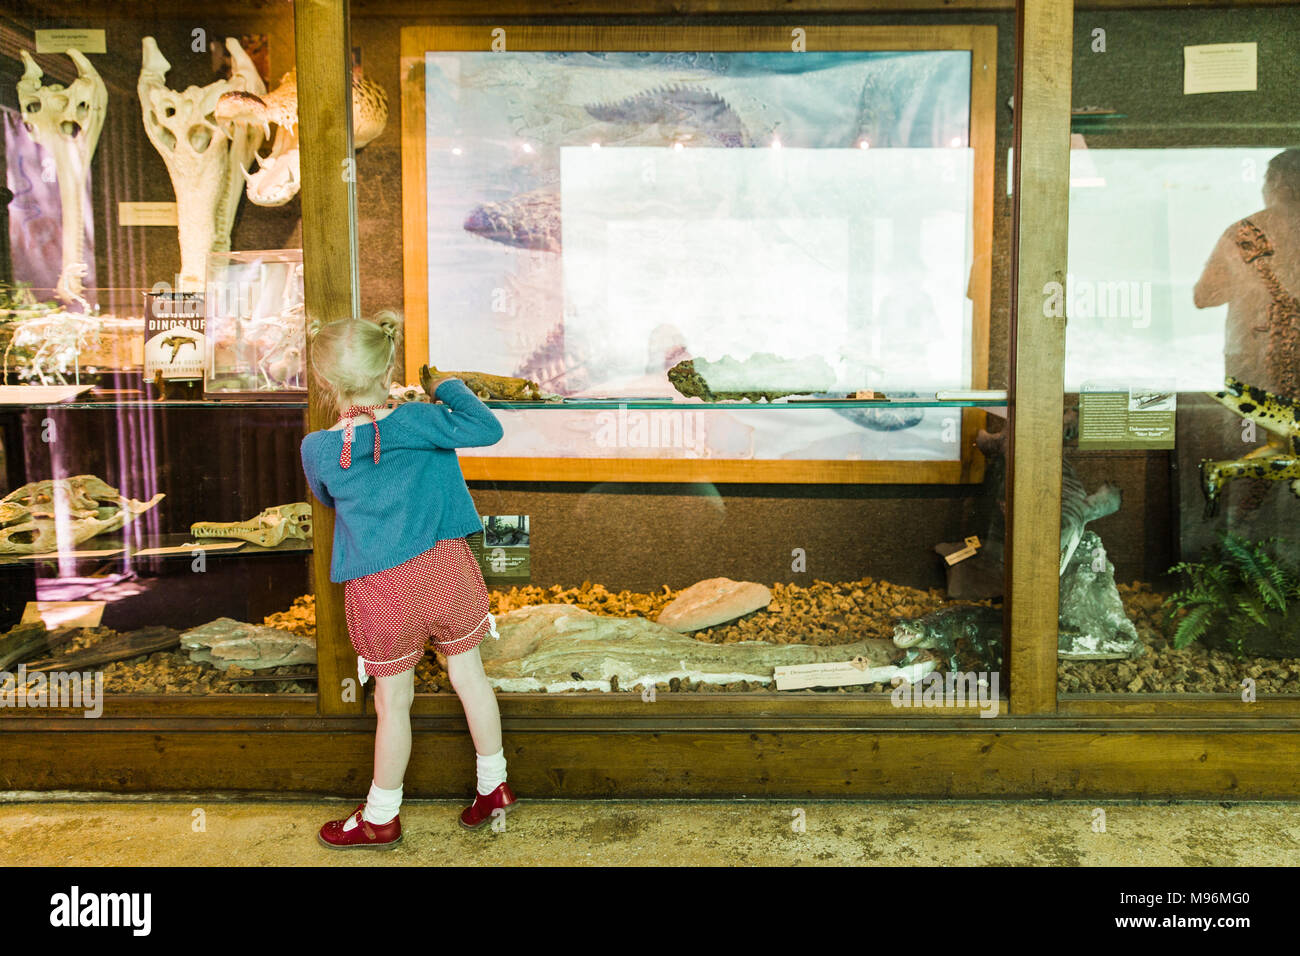 Girl looking at museum exhibit - Stock Image